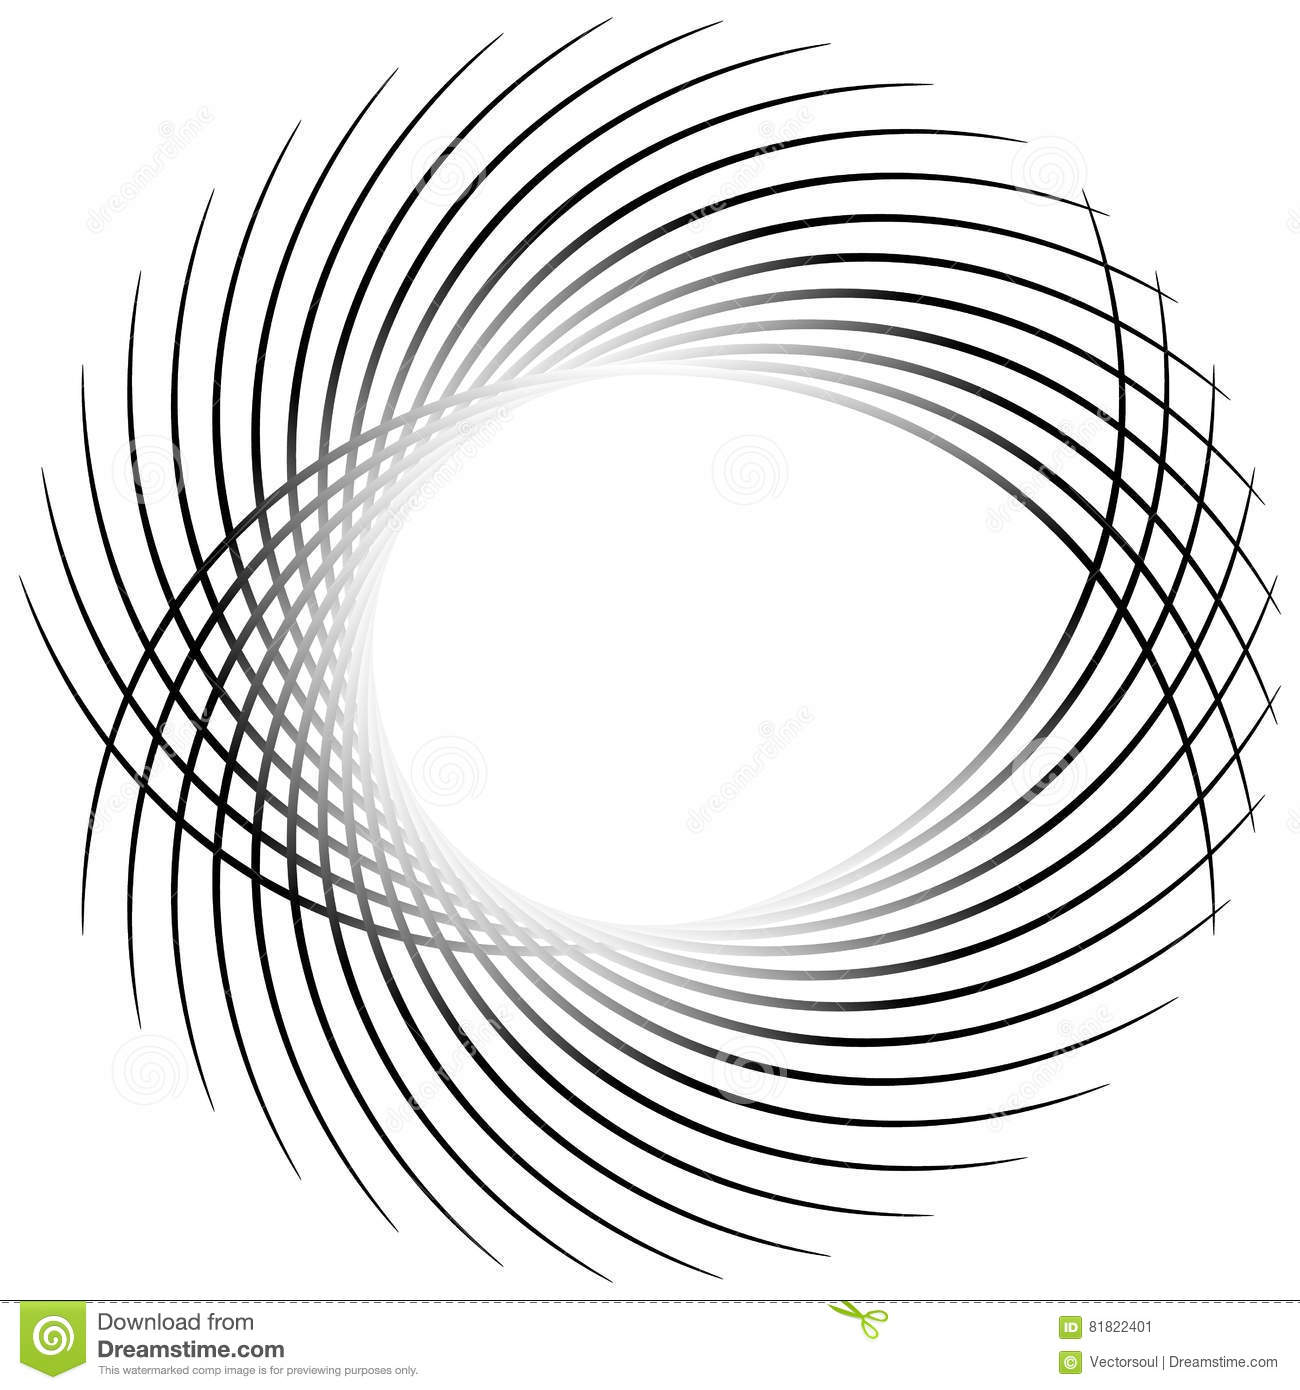 Dynamic Irregular Lines Forming A Circle Element  Geometric